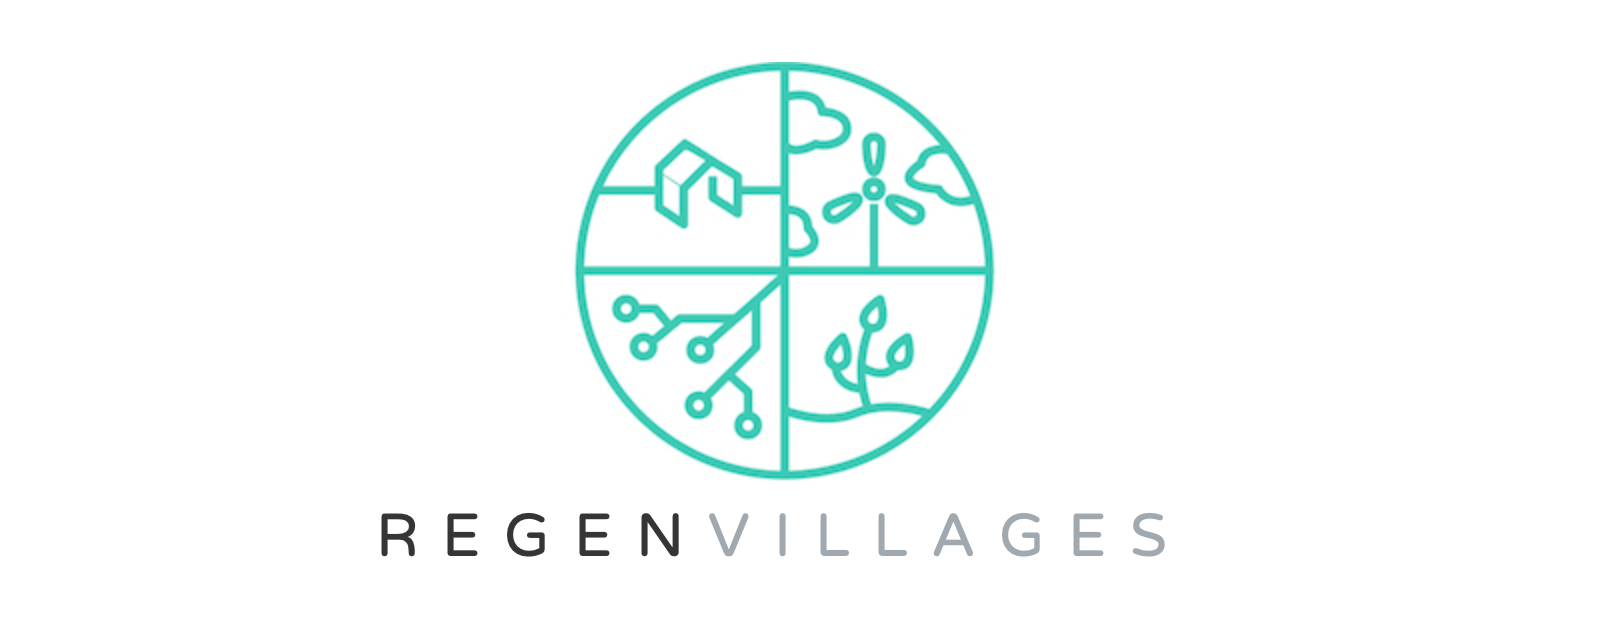 ReGen Villages Wants to Reinvent the Suburbs